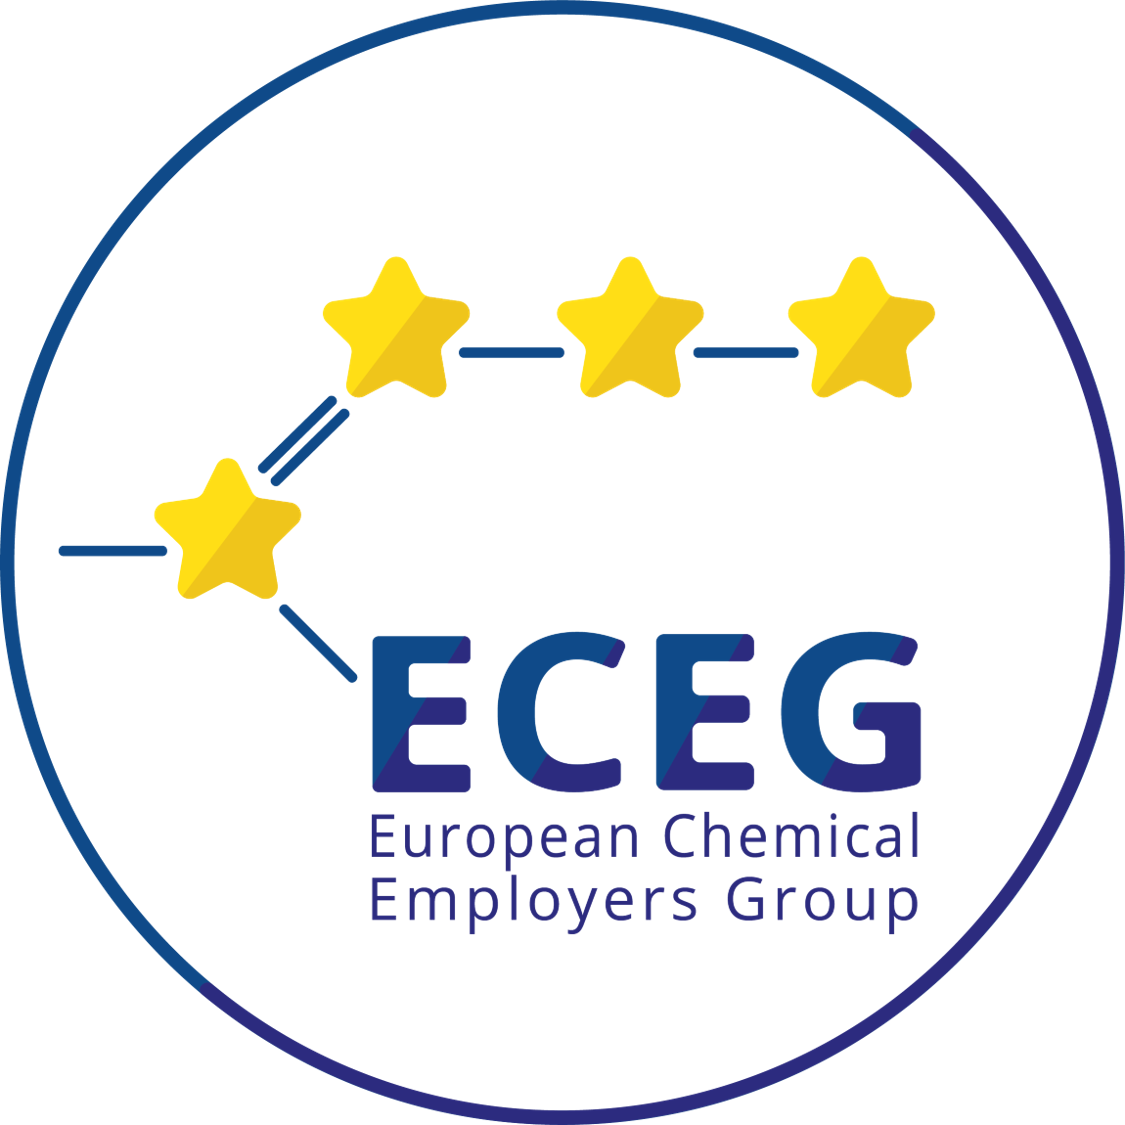 logo for European Chemical Employers Group